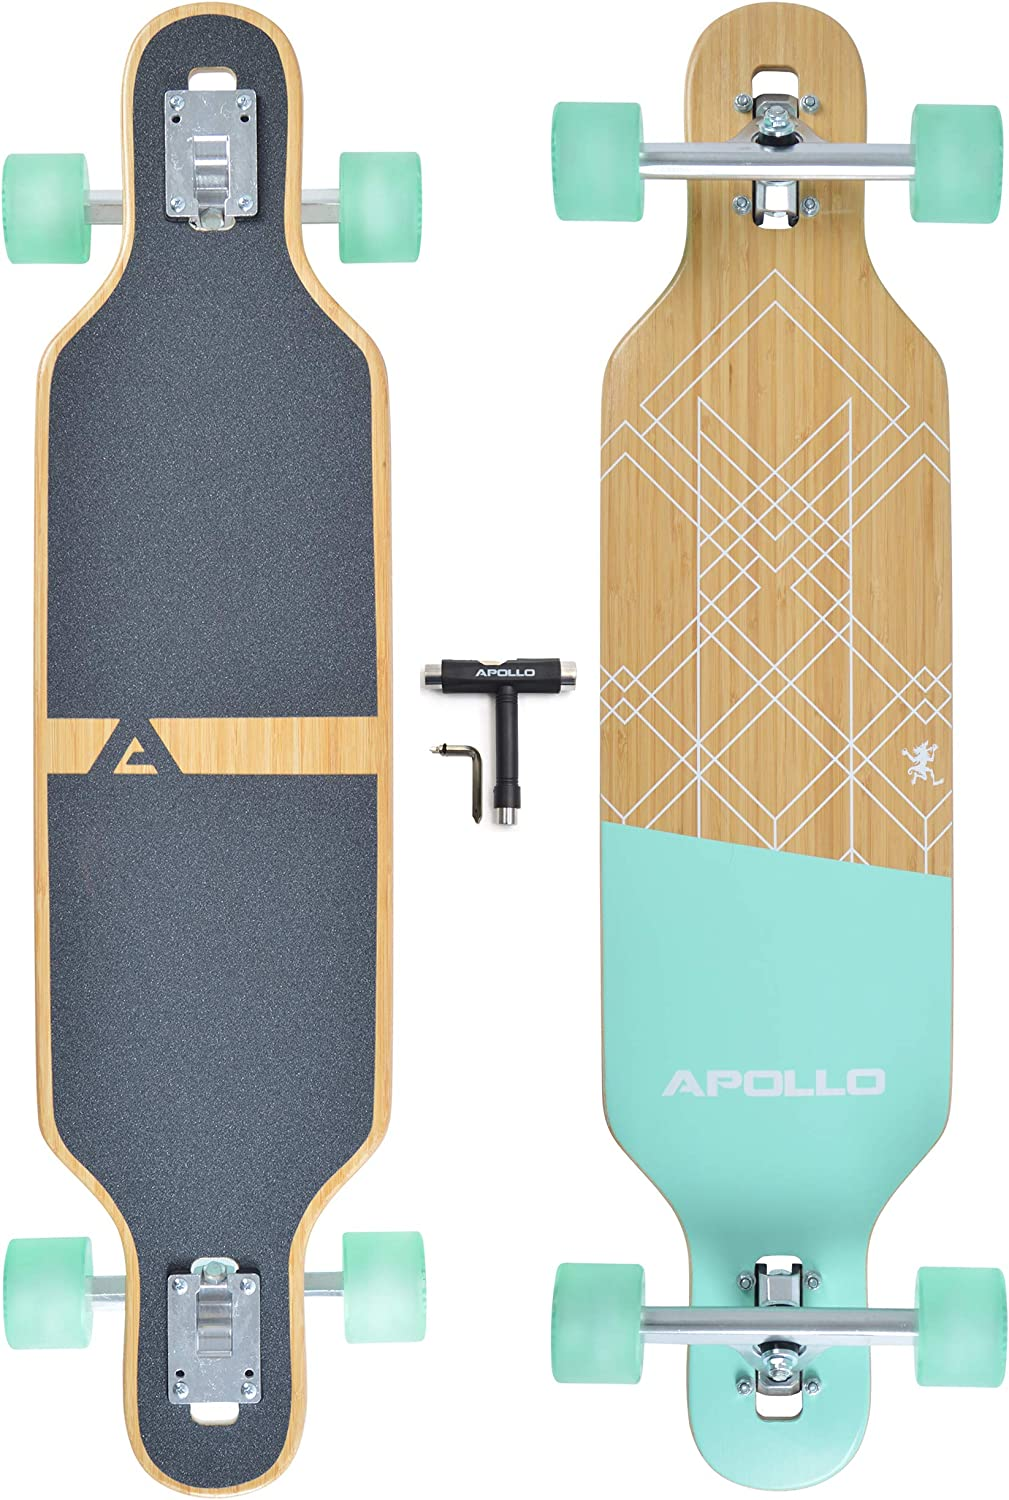 7 Layers Teens and Adults; Freeride Skateboard Cruiser and Downhill Longboards APOLLO Longboard for Professionals and Beginners; Long Board for Kids